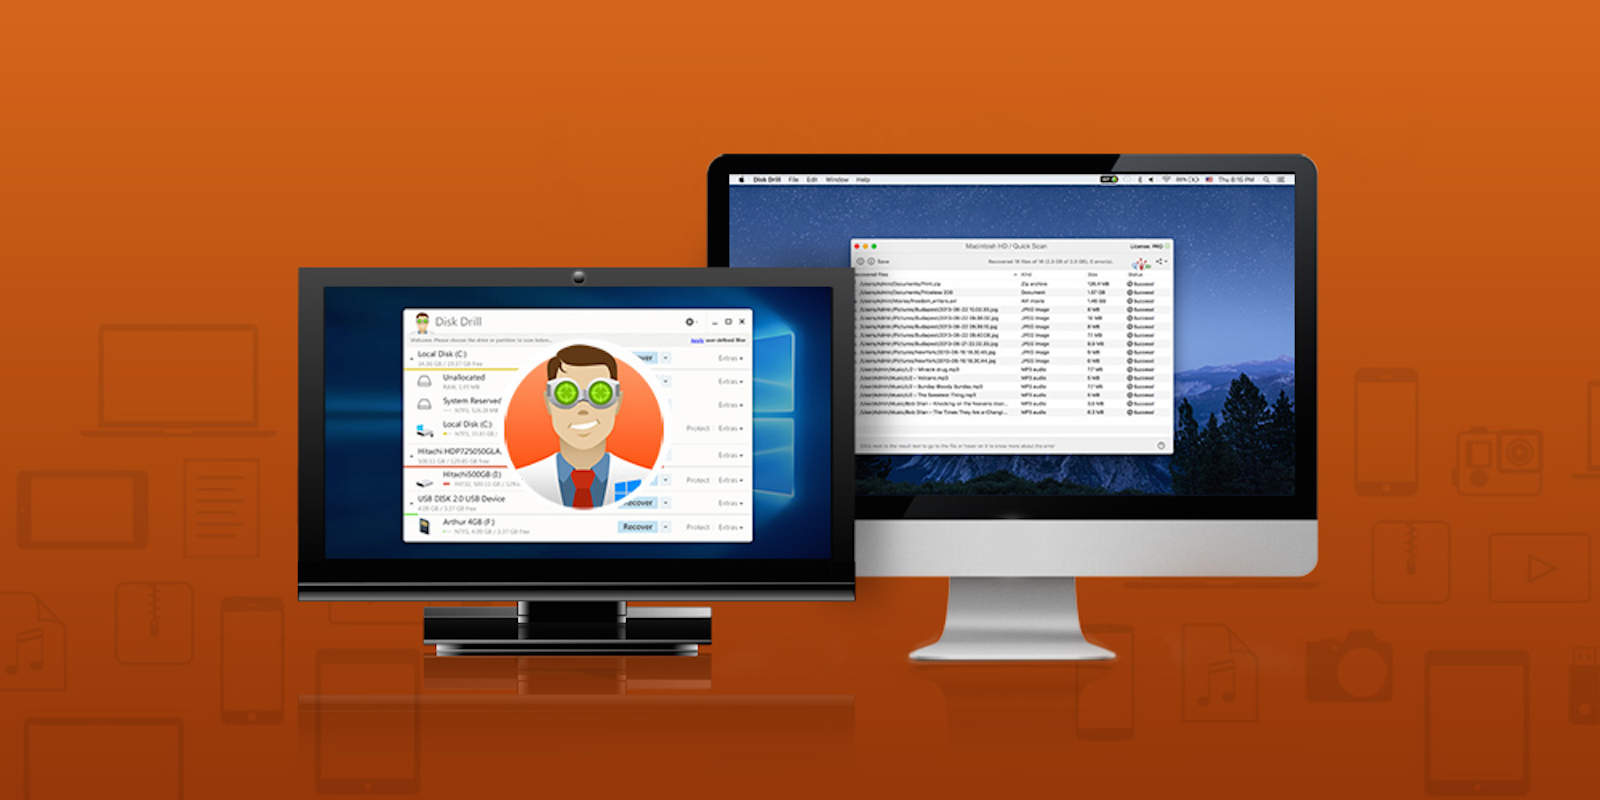 This suite of disk utility tools can recover lost data and maintain a healthy drive on almost any device.